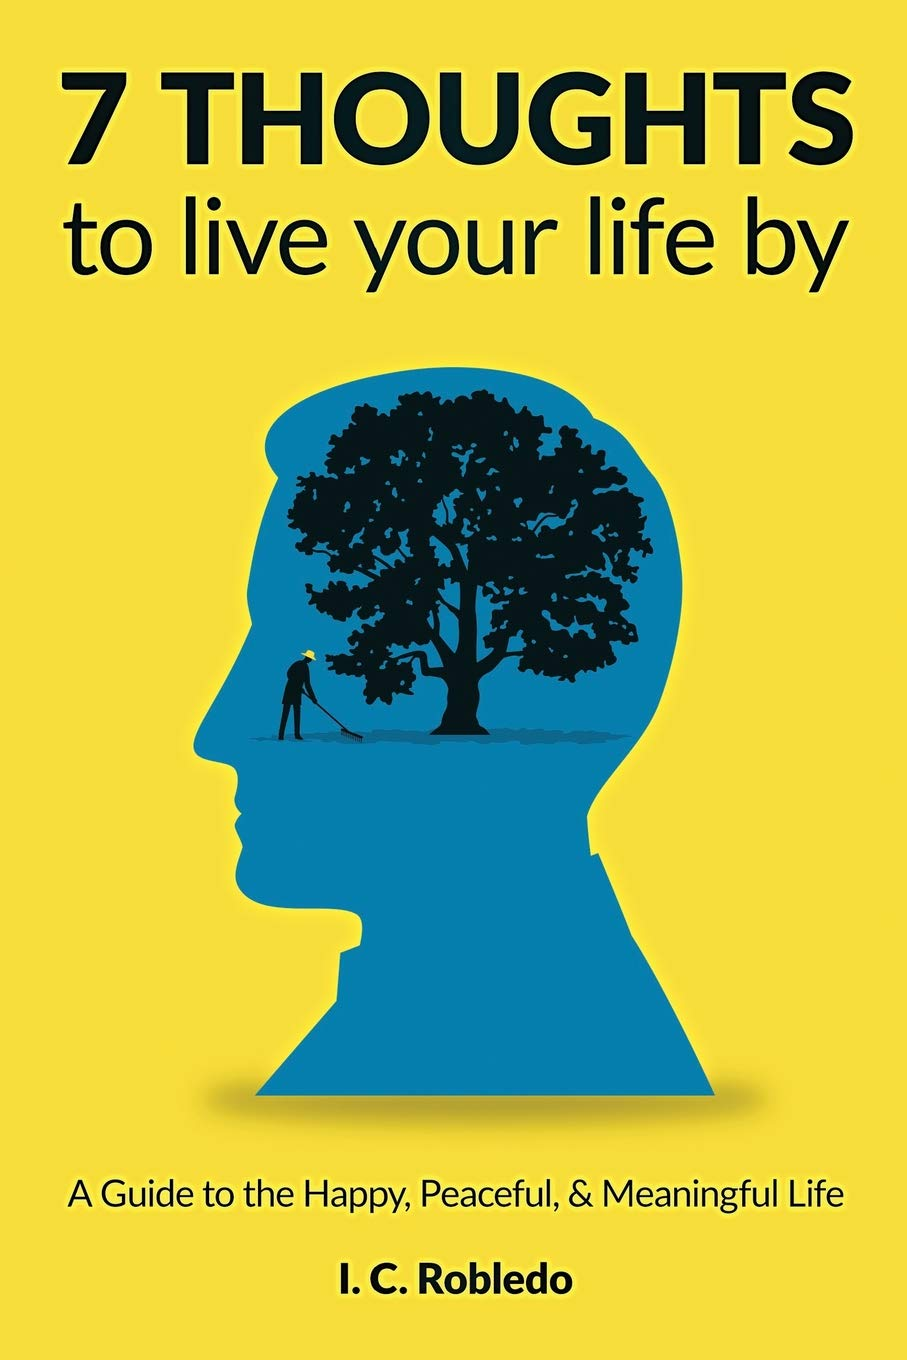 7 Thoughts To Live Your Life By A Guide To The Happy Peaceful Meaningful Life Amazon Co Uk Robledo I C 9781794523845 Books